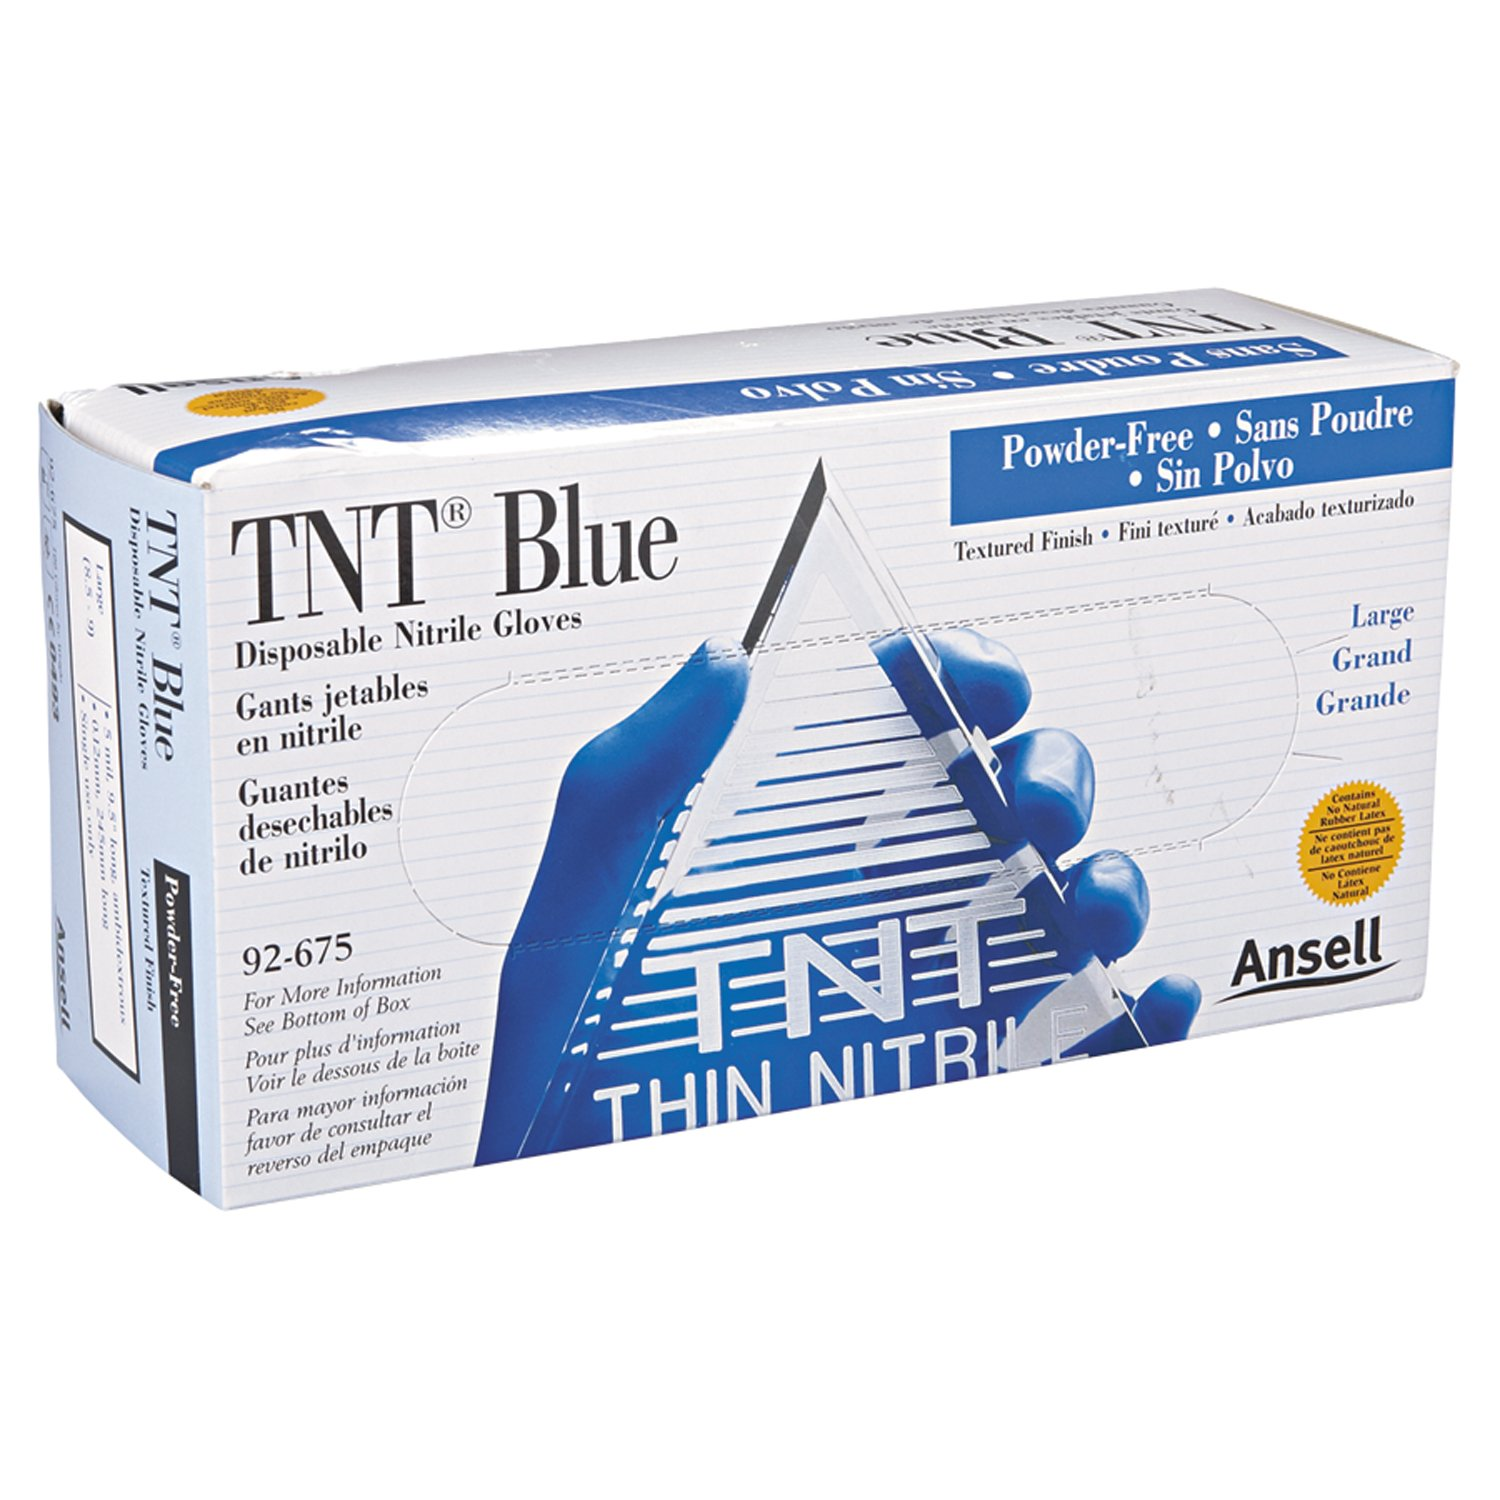 Ansell 92-675-L TNT Blue Disposable Gloves, Powder Free, Nitrile, 5 mil, Large, Blue by Ansell  B01KCGK60K